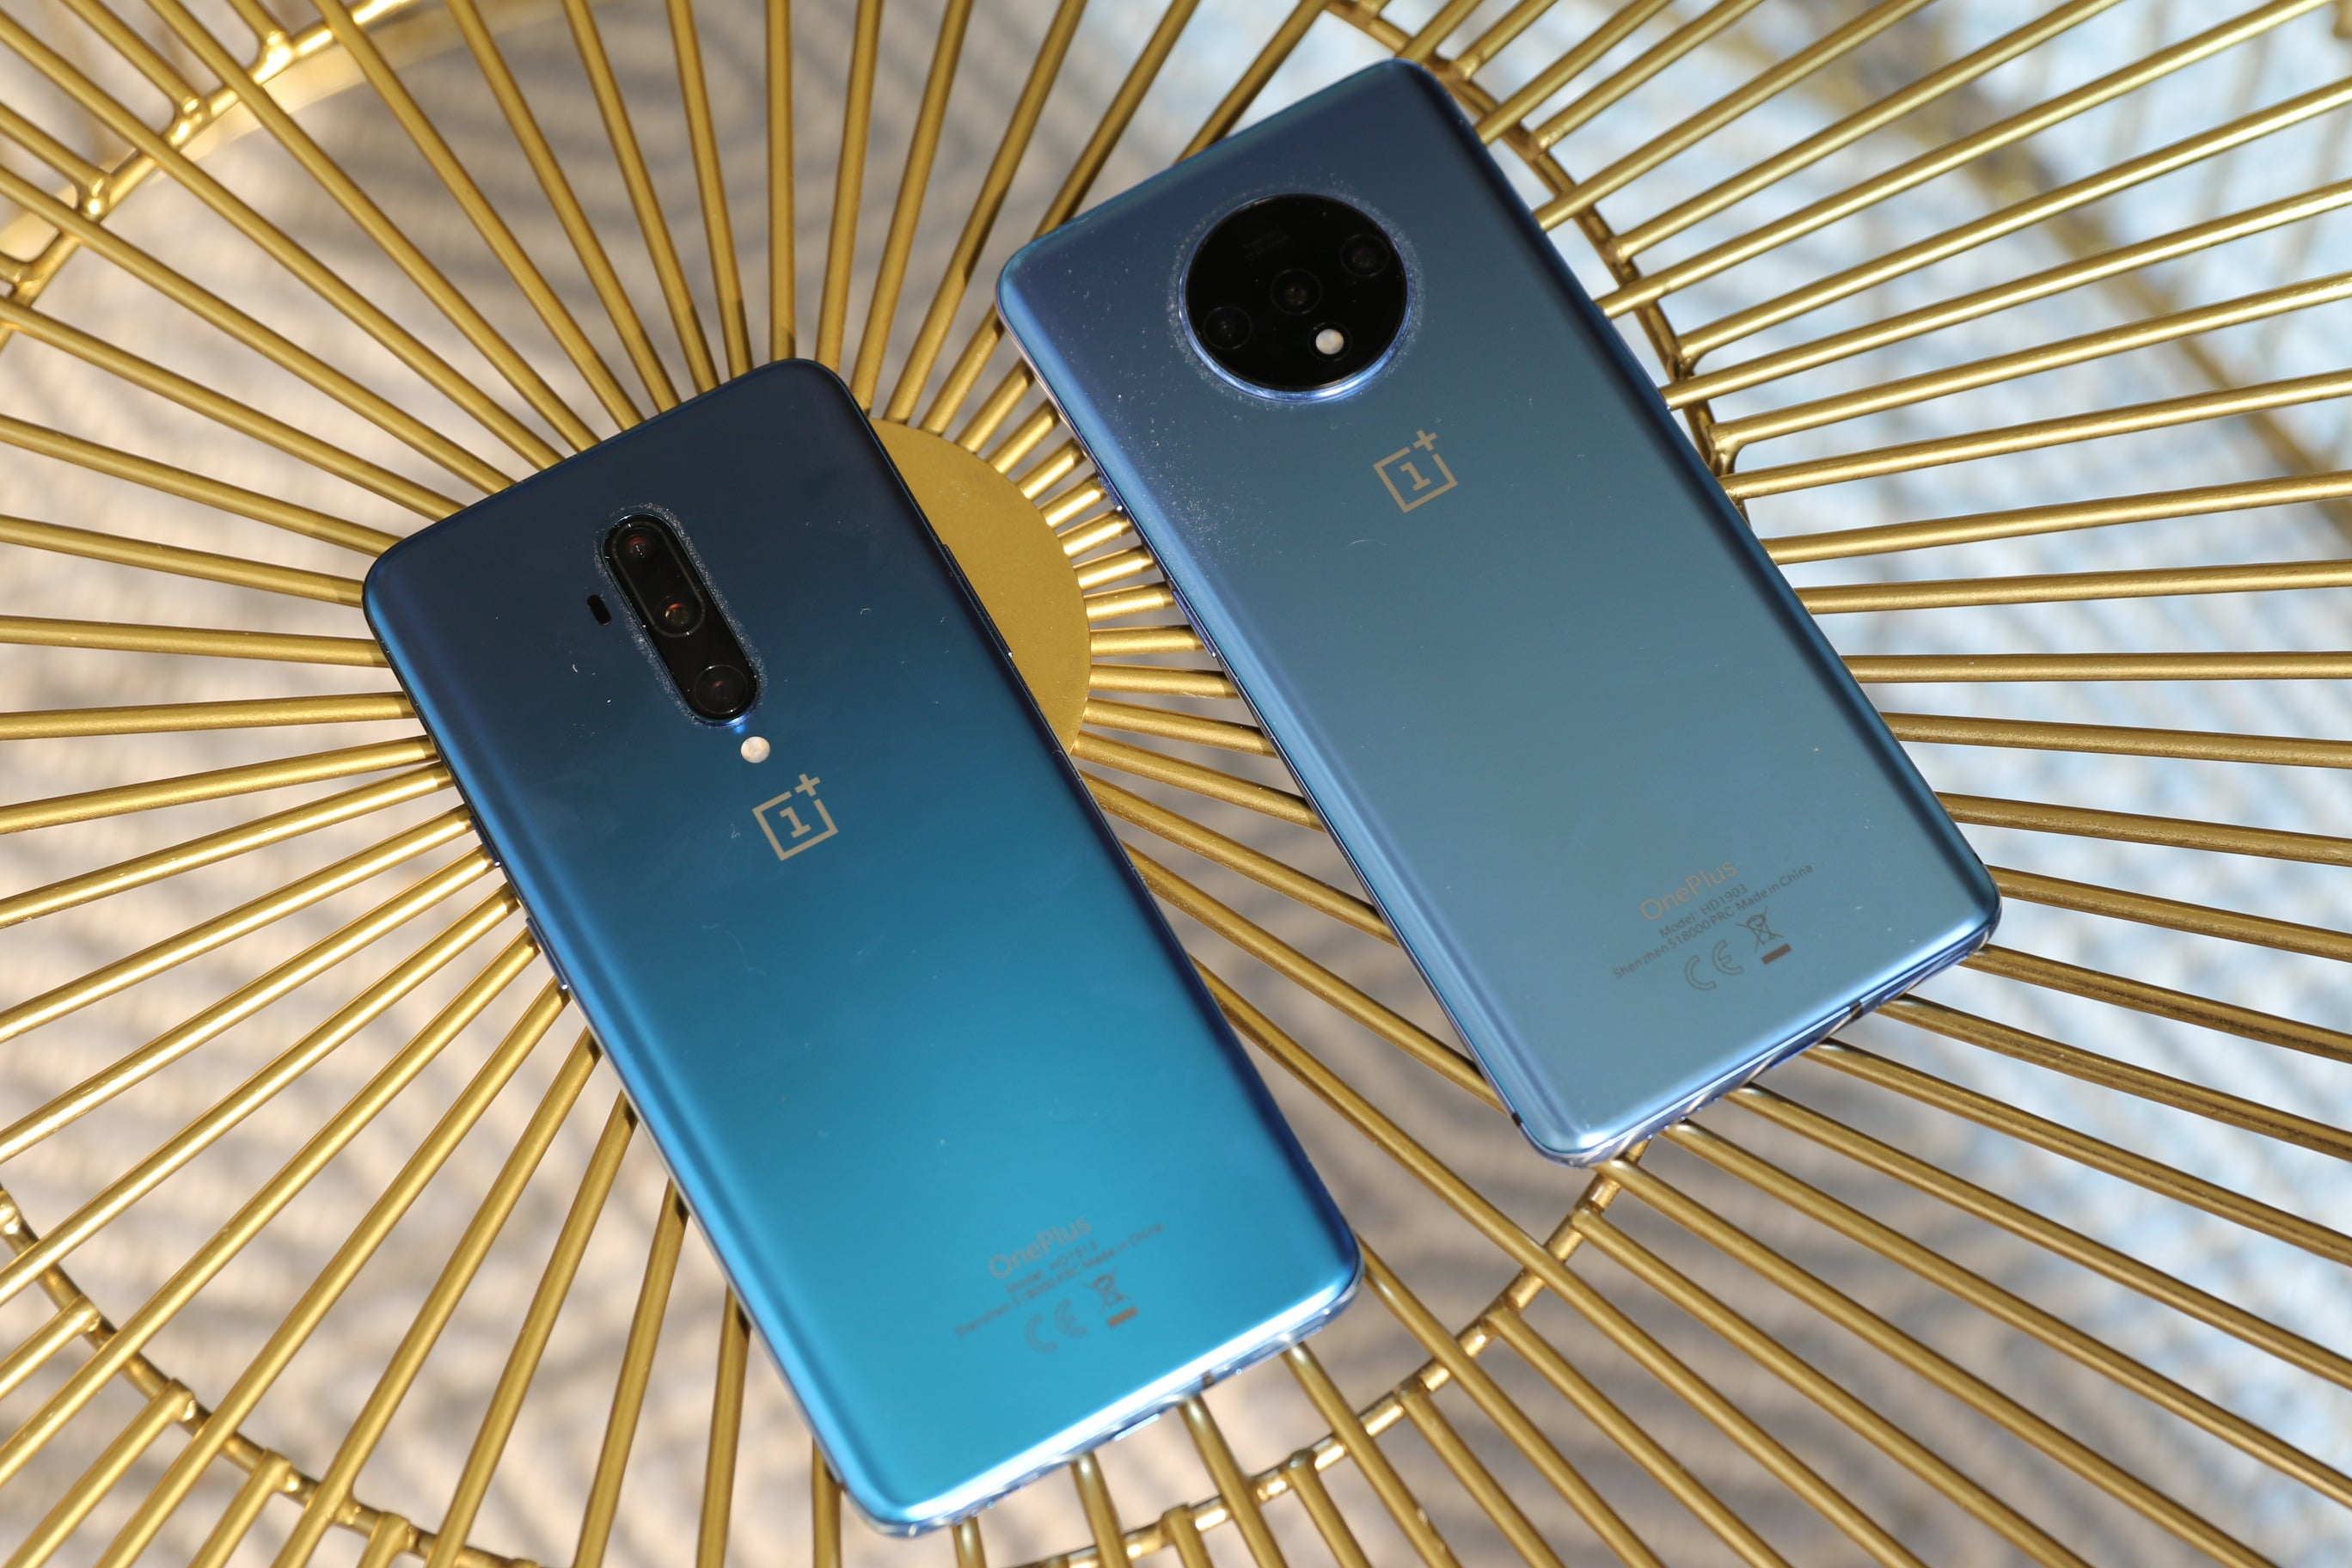 OnePlus 8 Pro could edge out Galaxy S20 range in one key category